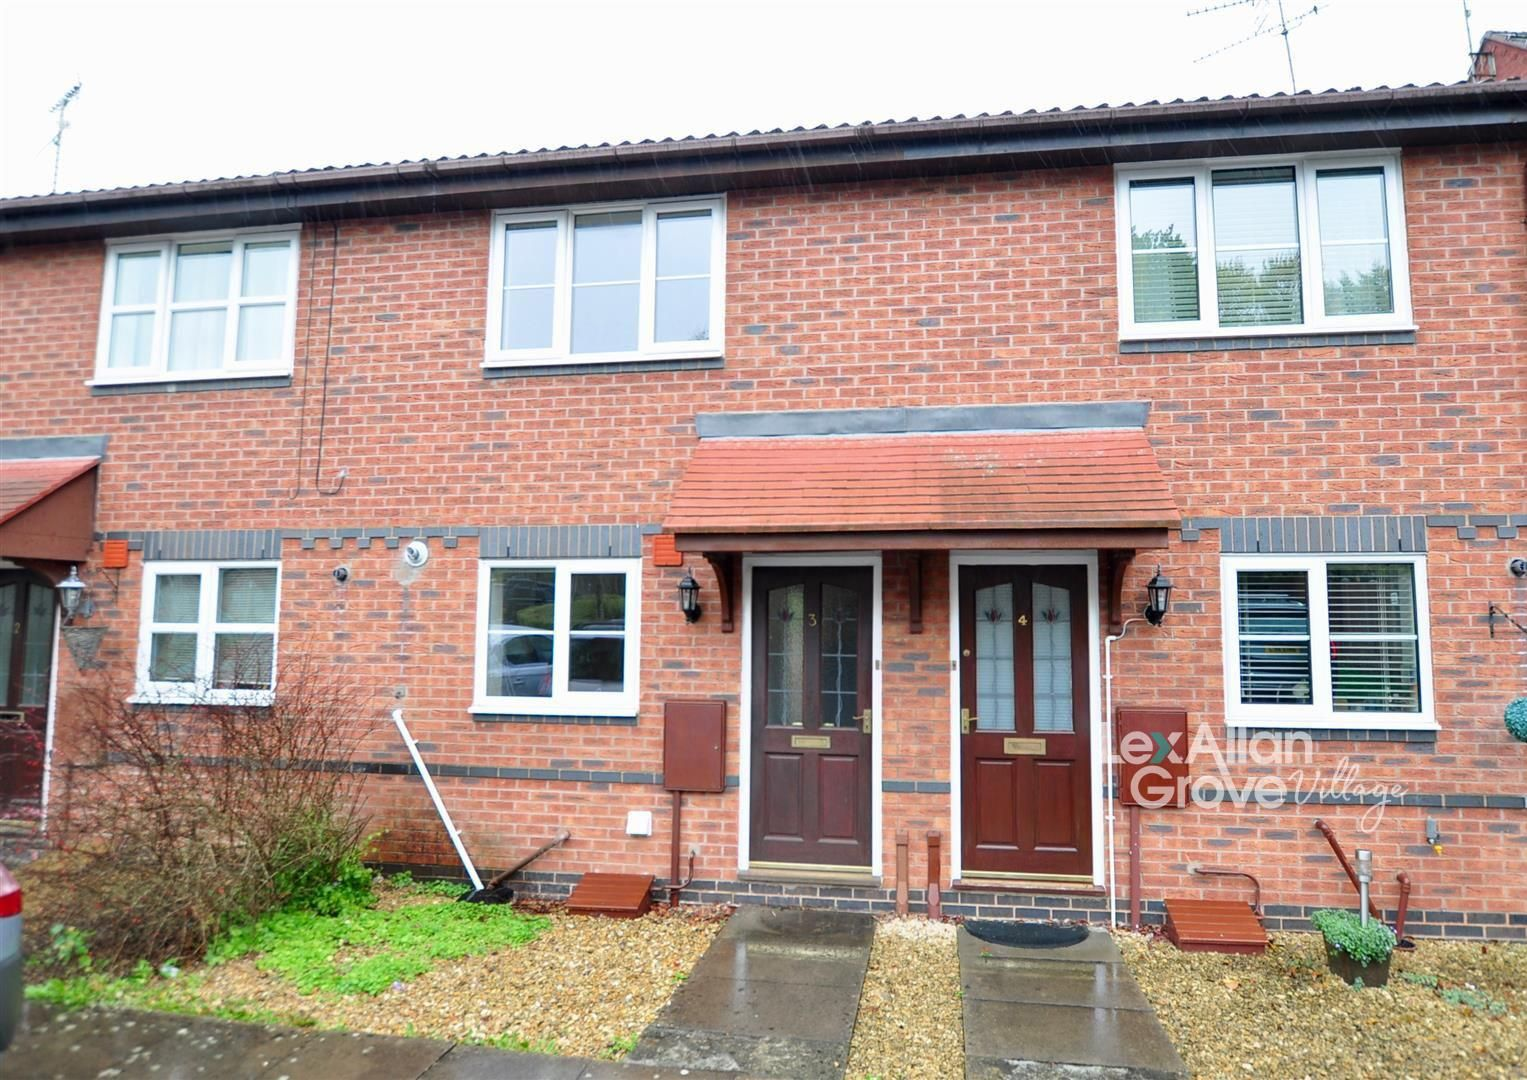 2 bed terraced for sale in Hagley - Property Image 1